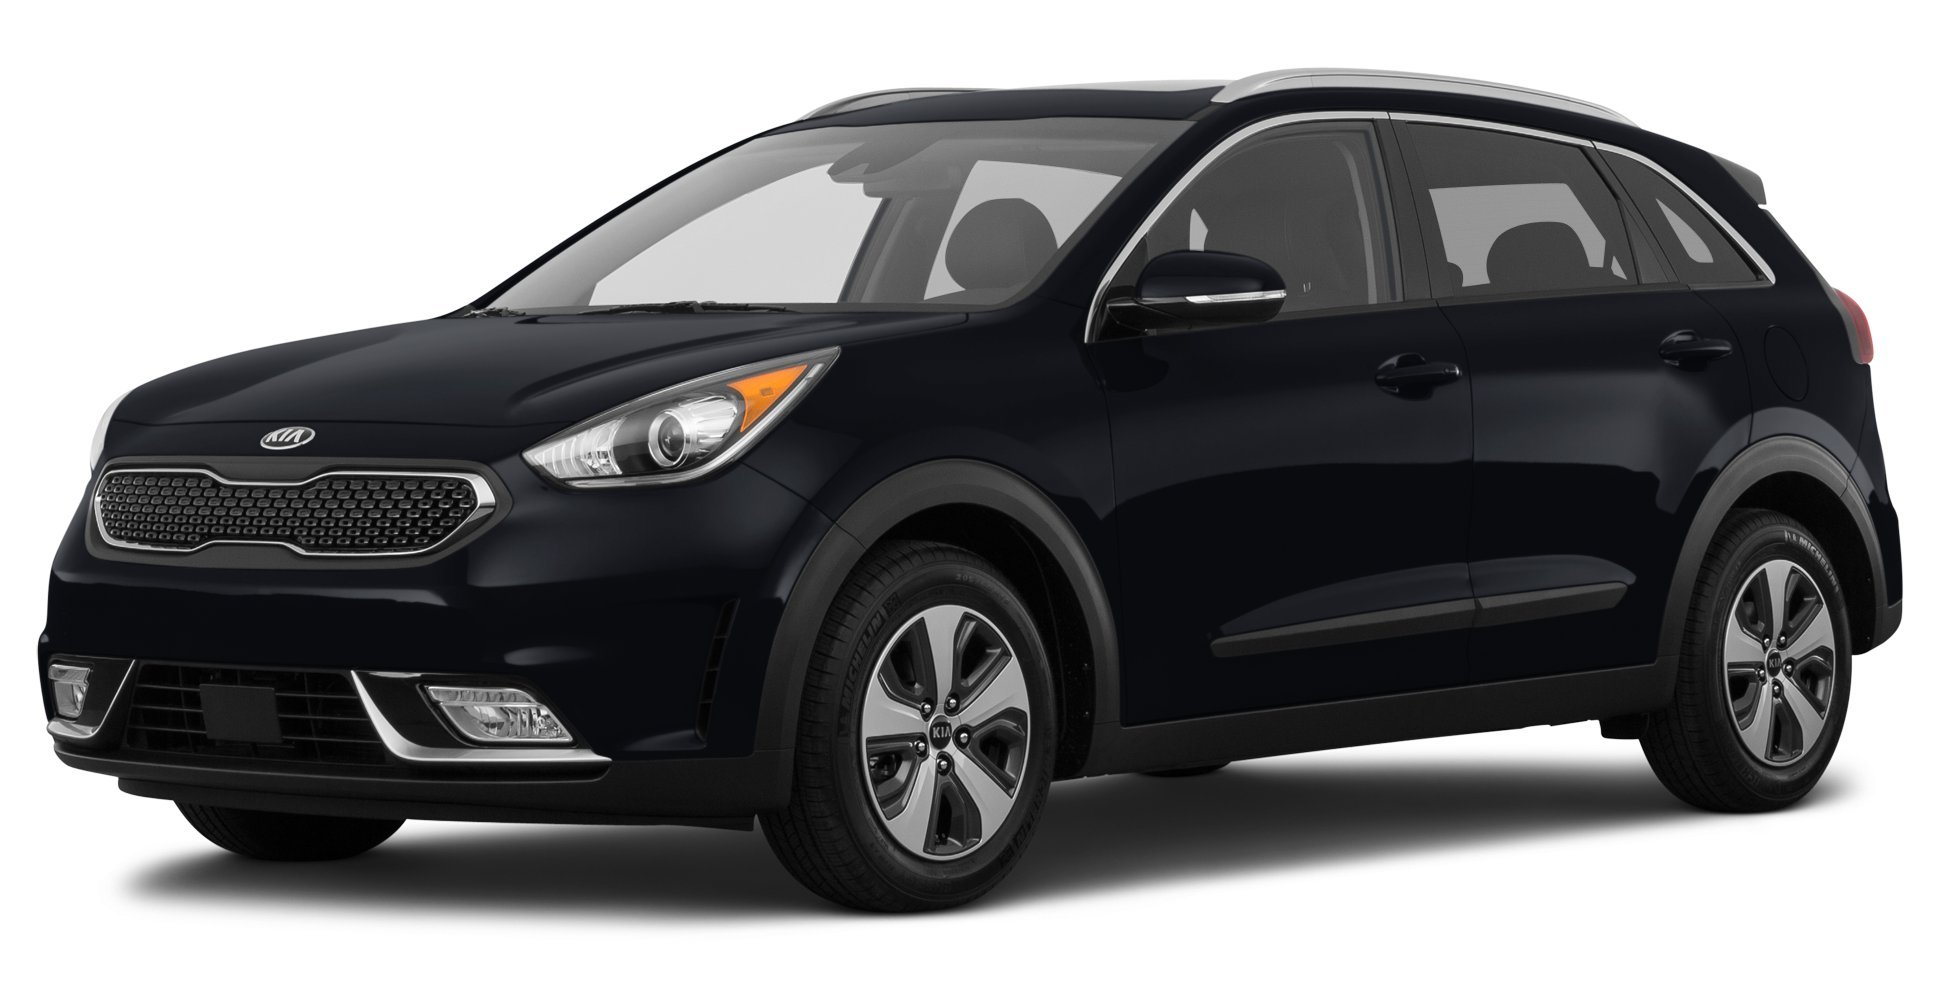 2017 kia niro reviews images and specs vehicles. Black Bedroom Furniture Sets. Home Design Ideas